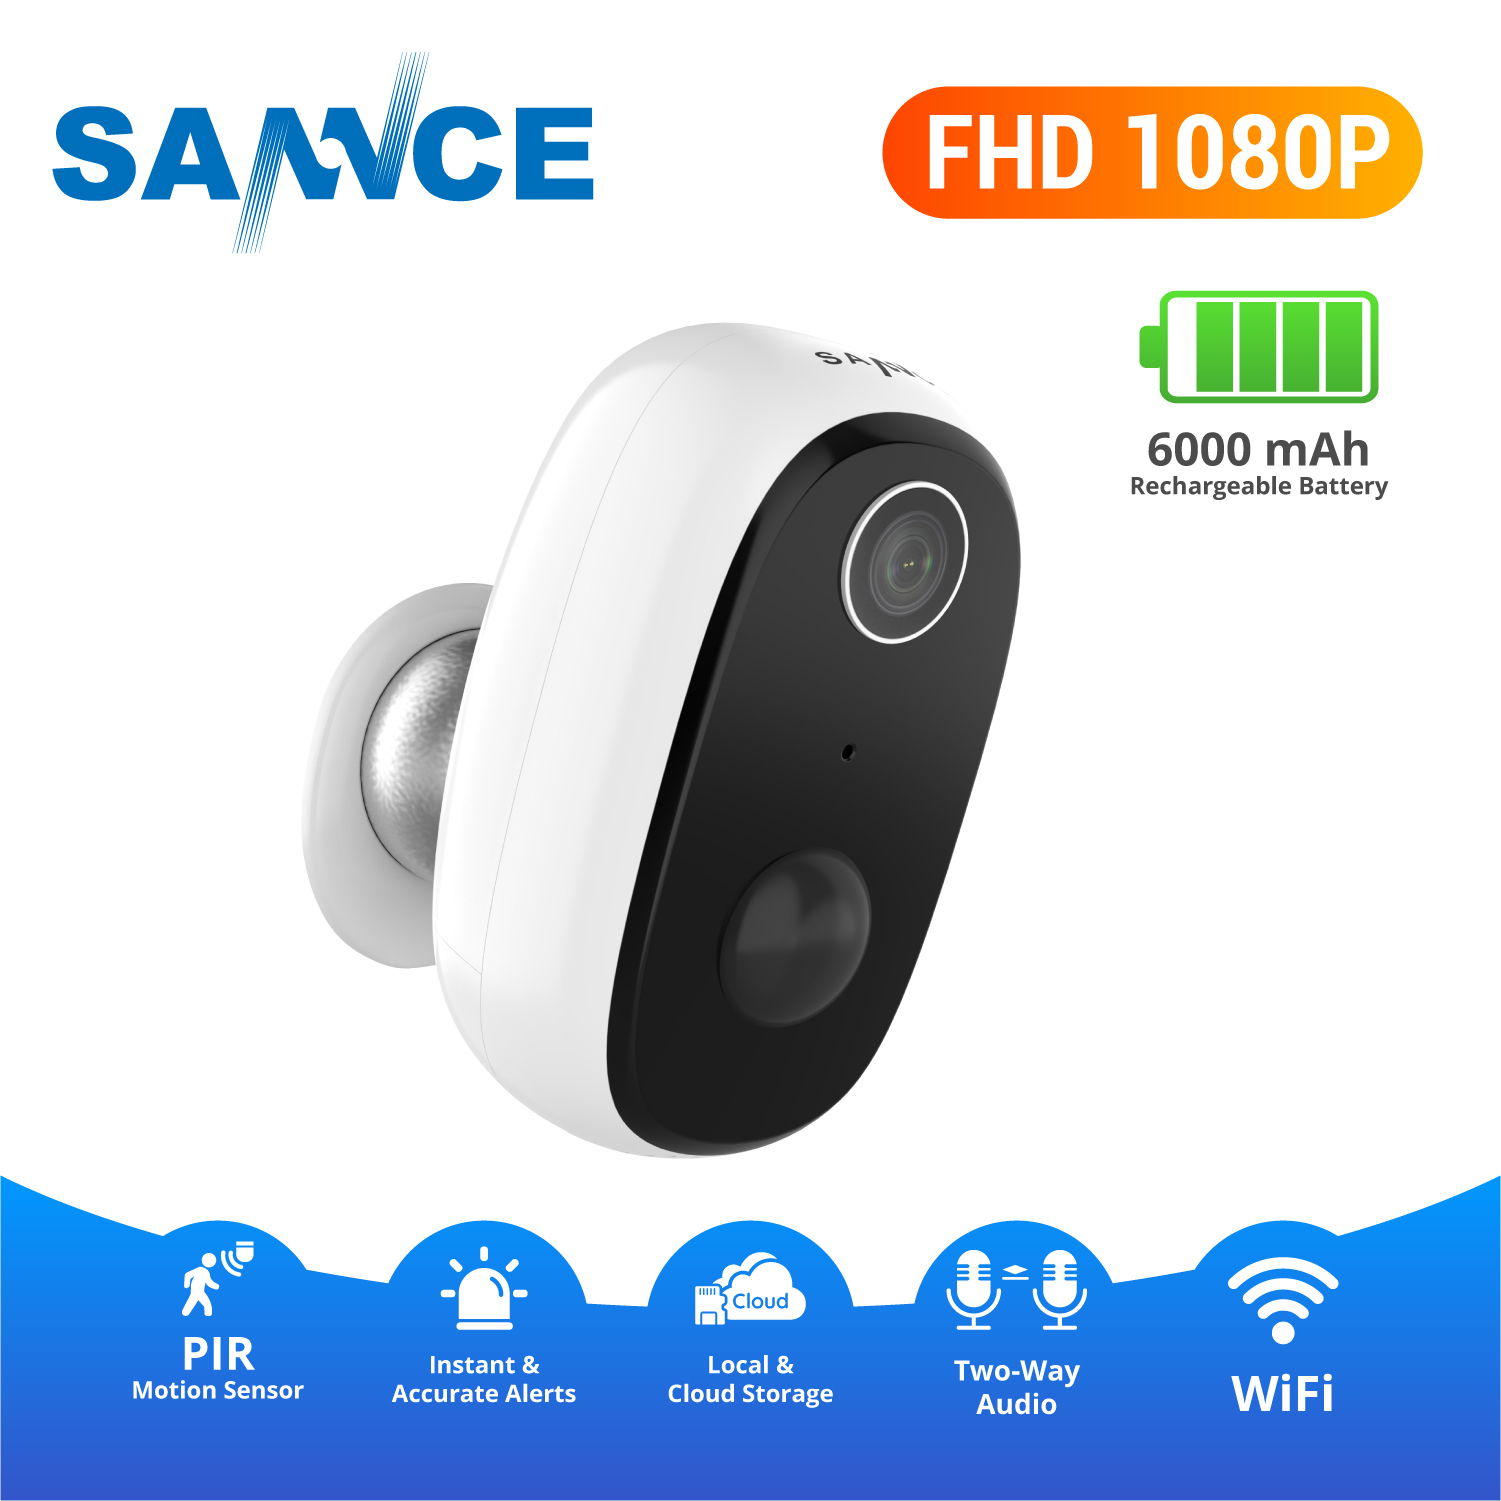 SANNCE Wireless Battery Powered Camera 1080p Rechargeable Home Surveillance IP65 Waterproof Indoor/Outdoor WiFi Security Camera